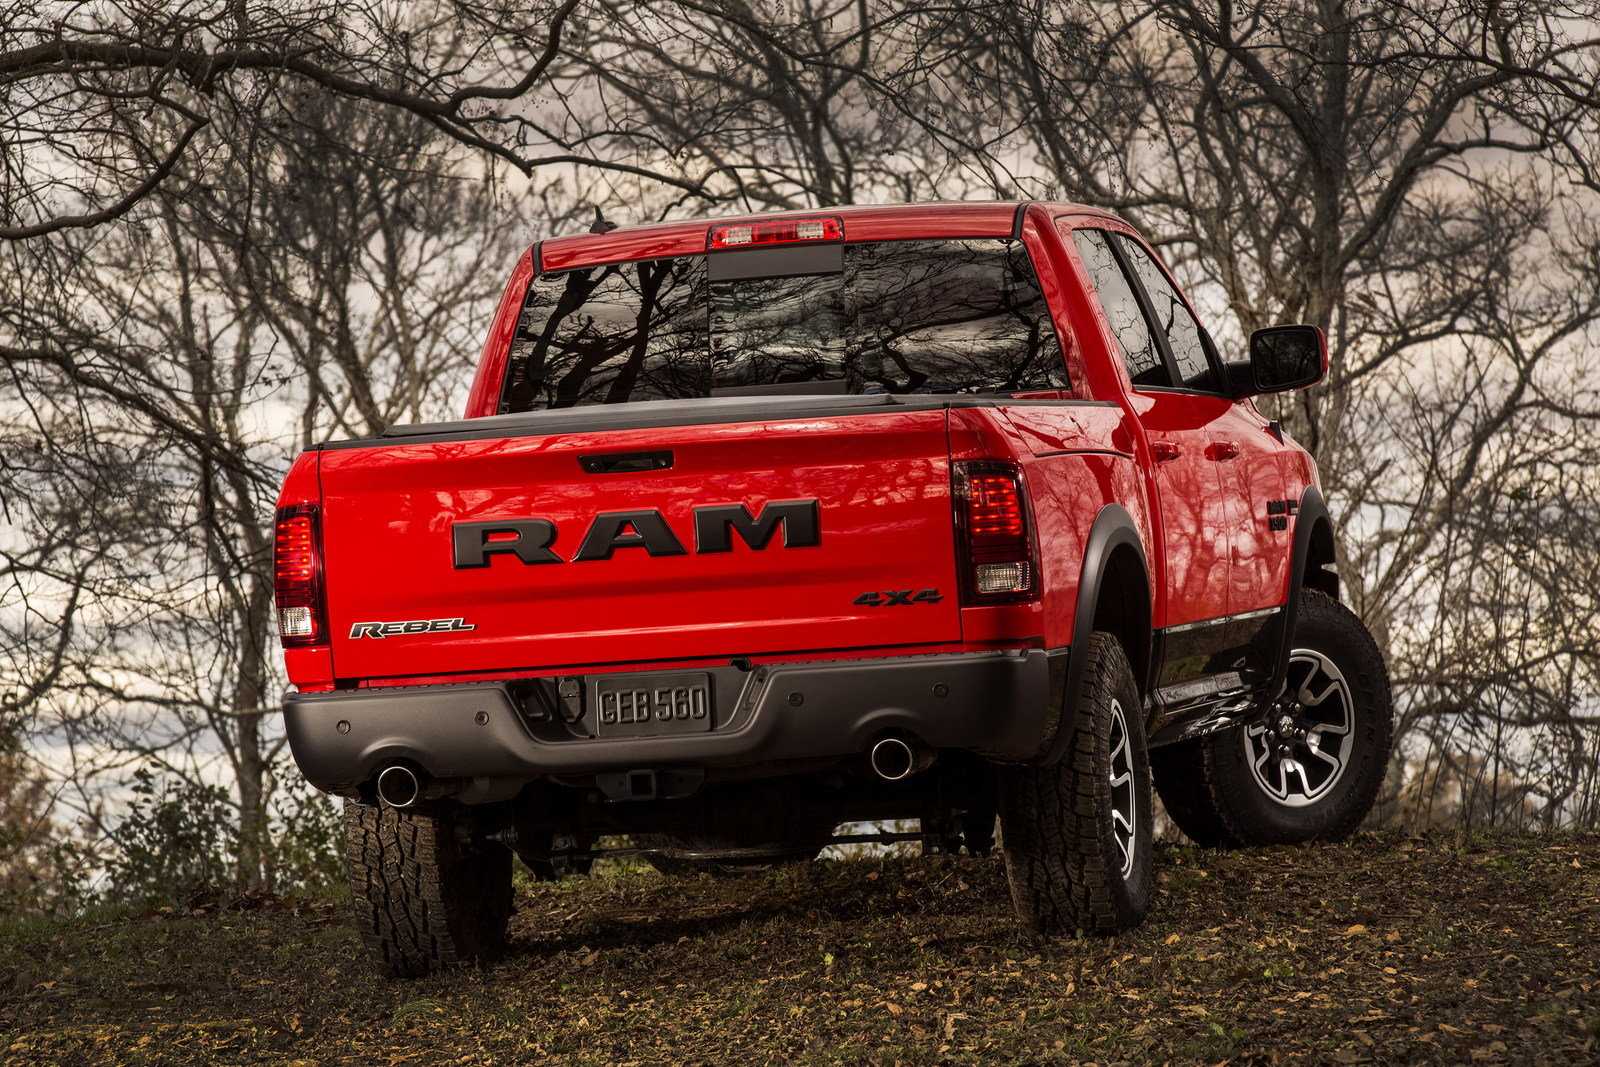 2015 ram 1500 rebel picture 610887 truck review top speed. Black Bedroom Furniture Sets. Home Design Ideas